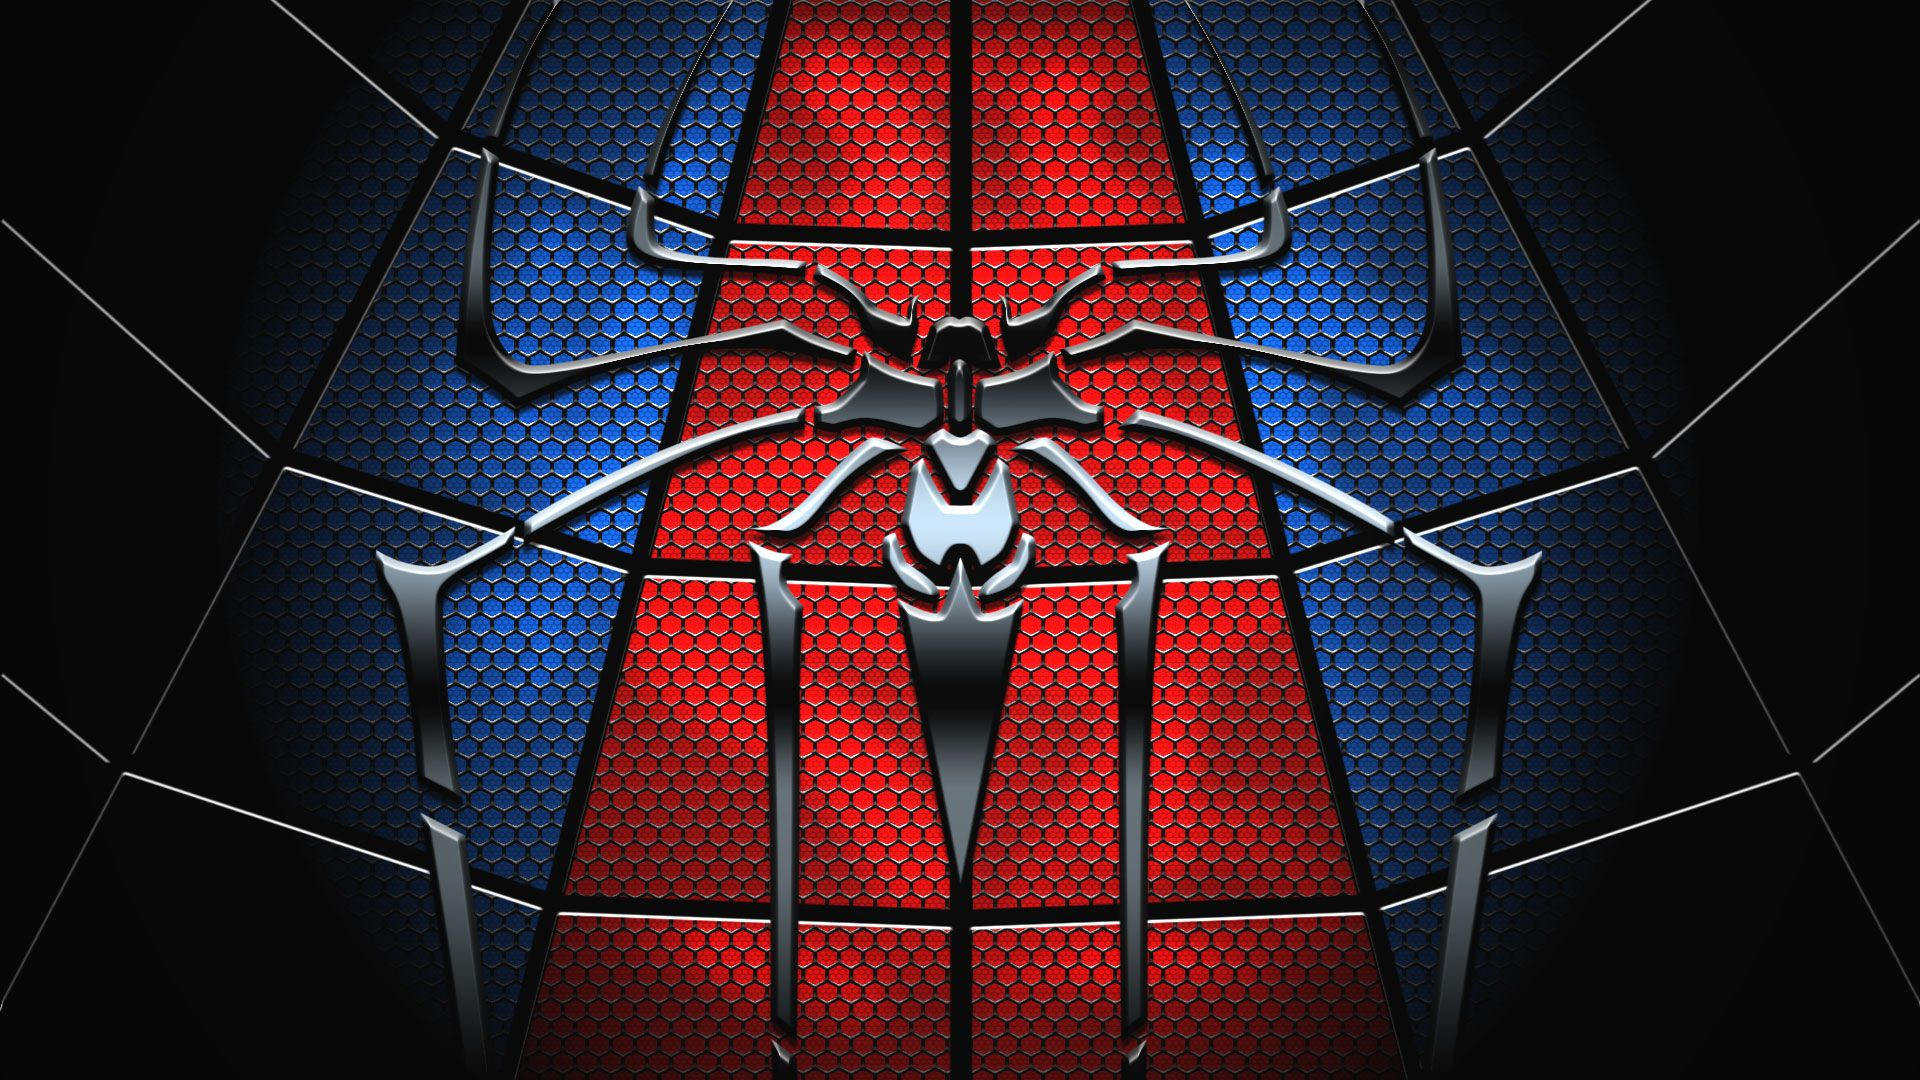 Spiderman Symbol Spiderman Images 4k Wallpapers For Pc Spiderman